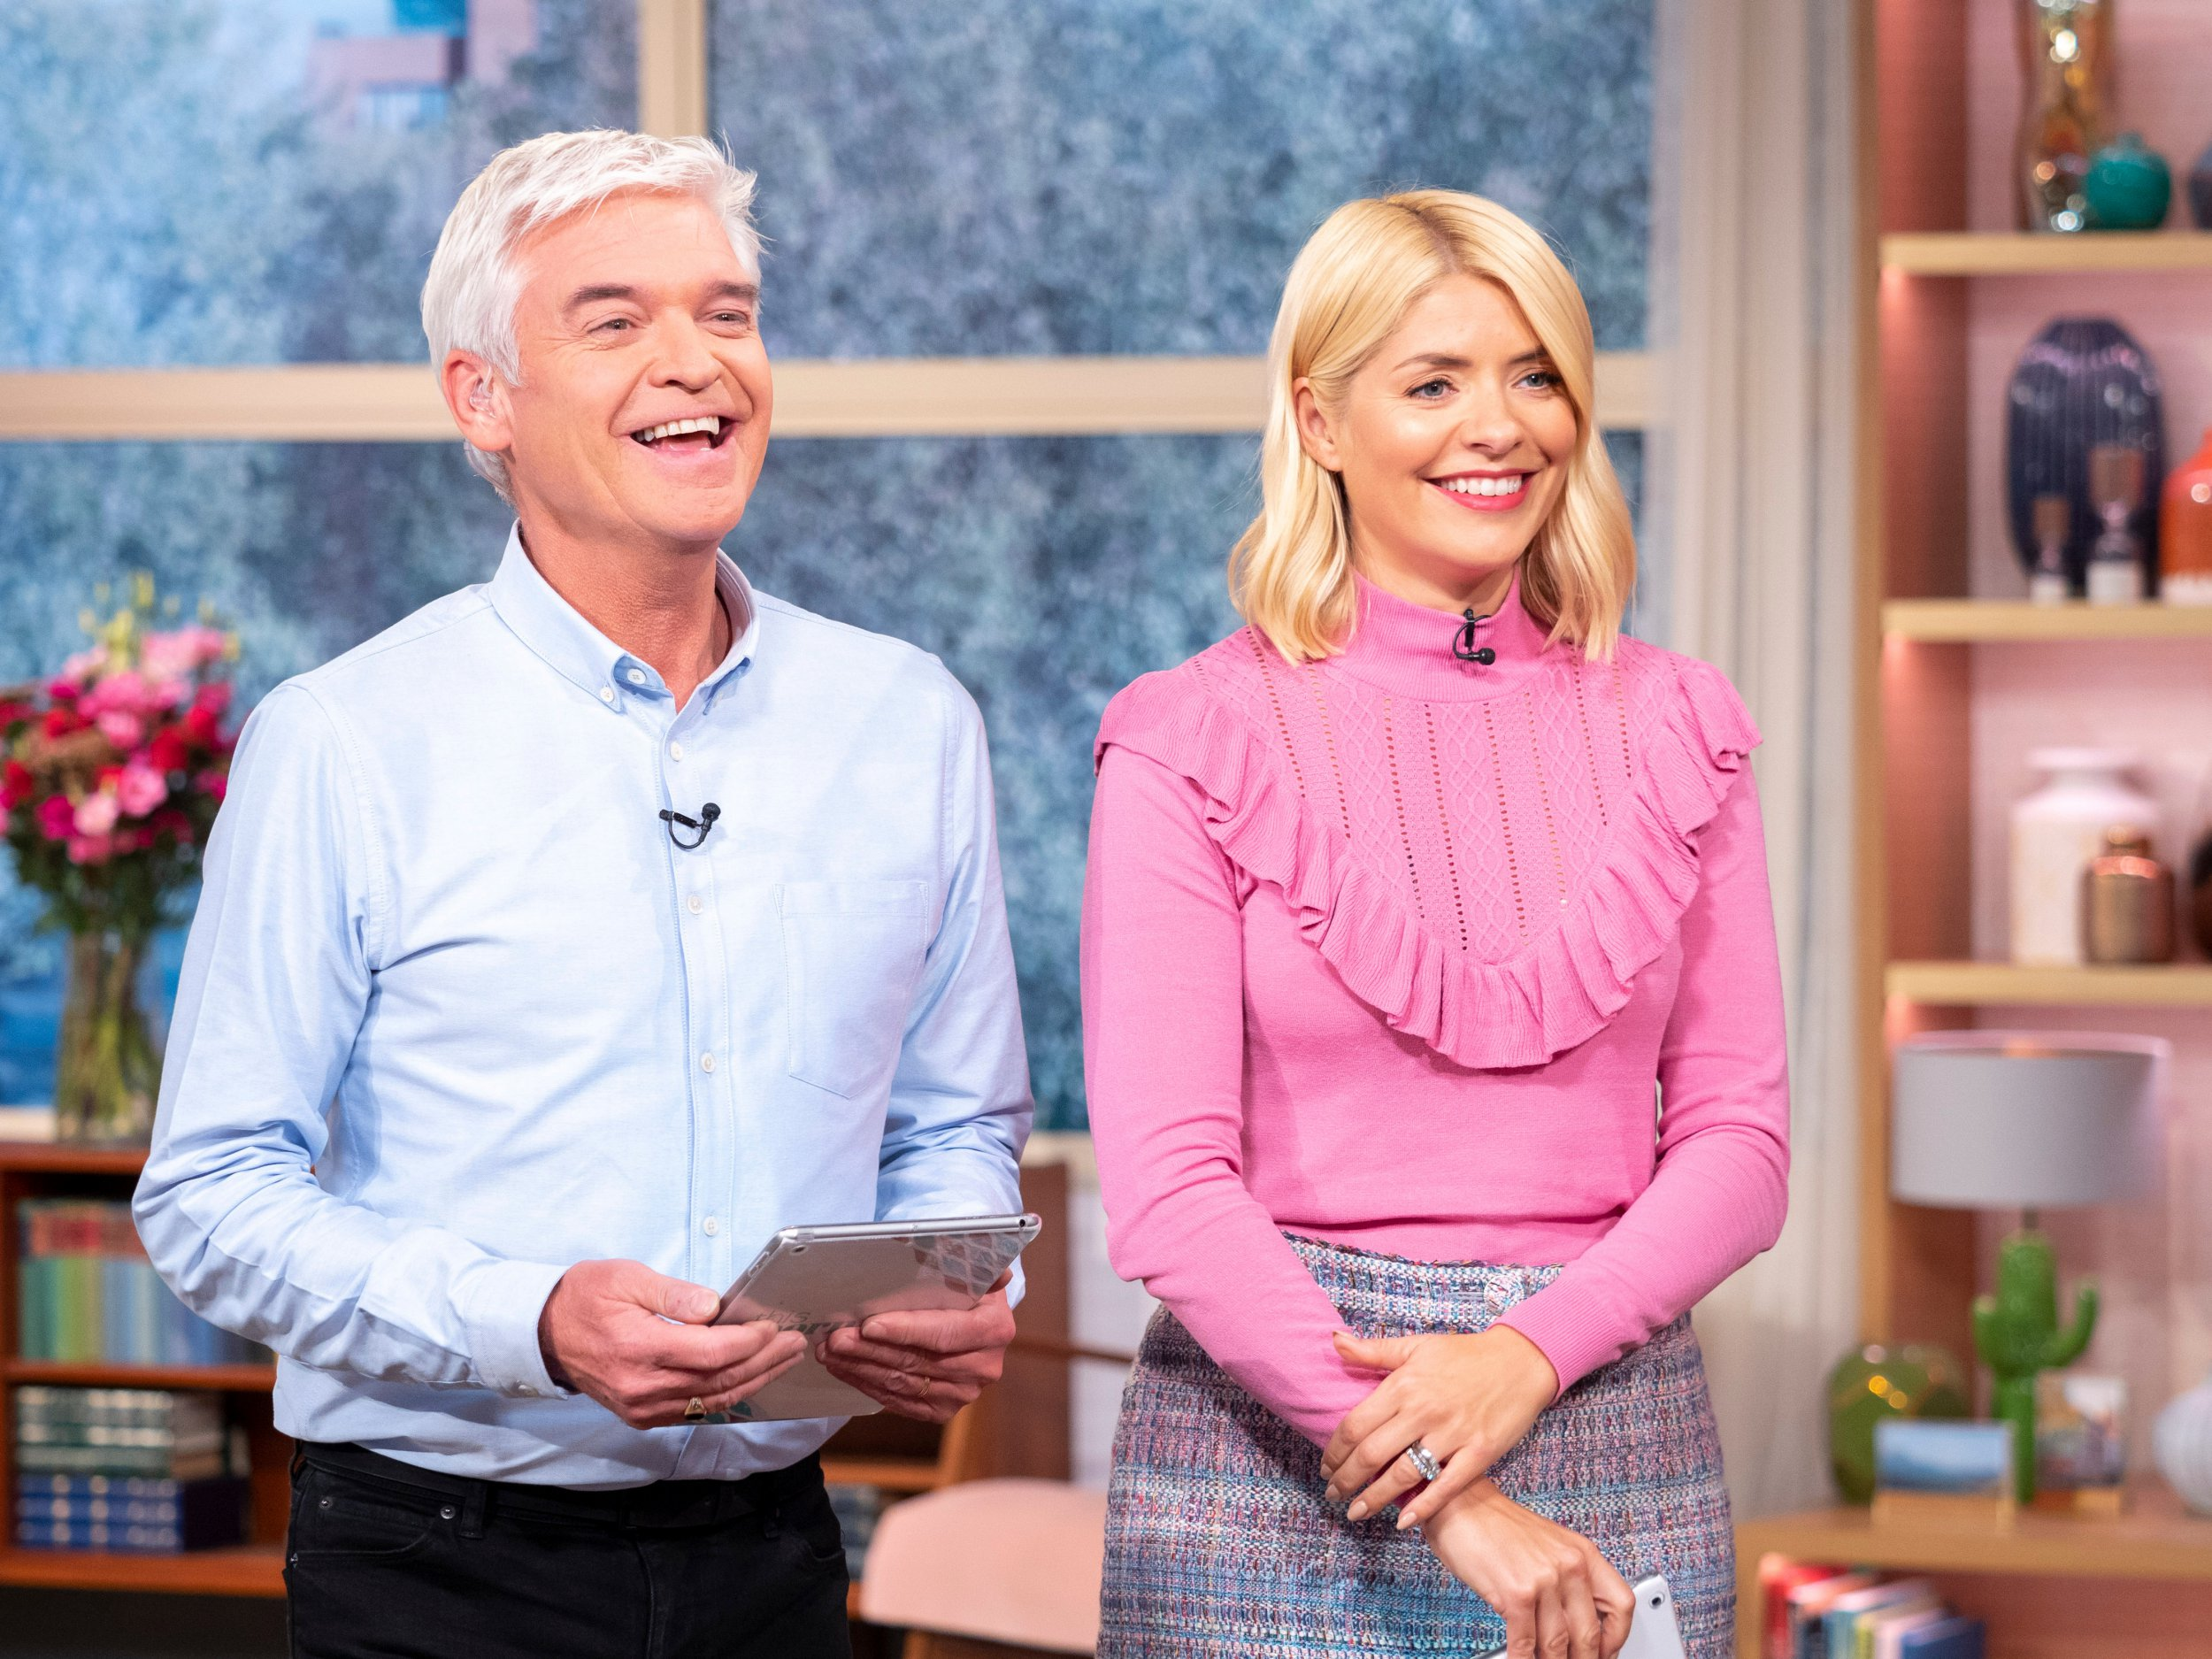 EDITORIAL USE ONLY. NO MERCHANDISING Mandatory Credit: Photo by Ken McKay/ITV/REX/Shutterstock (9894274bd) Phillip Schofield and Holly Willoughby 'This Morning' TV show, London, UK - 25 Sep 2018